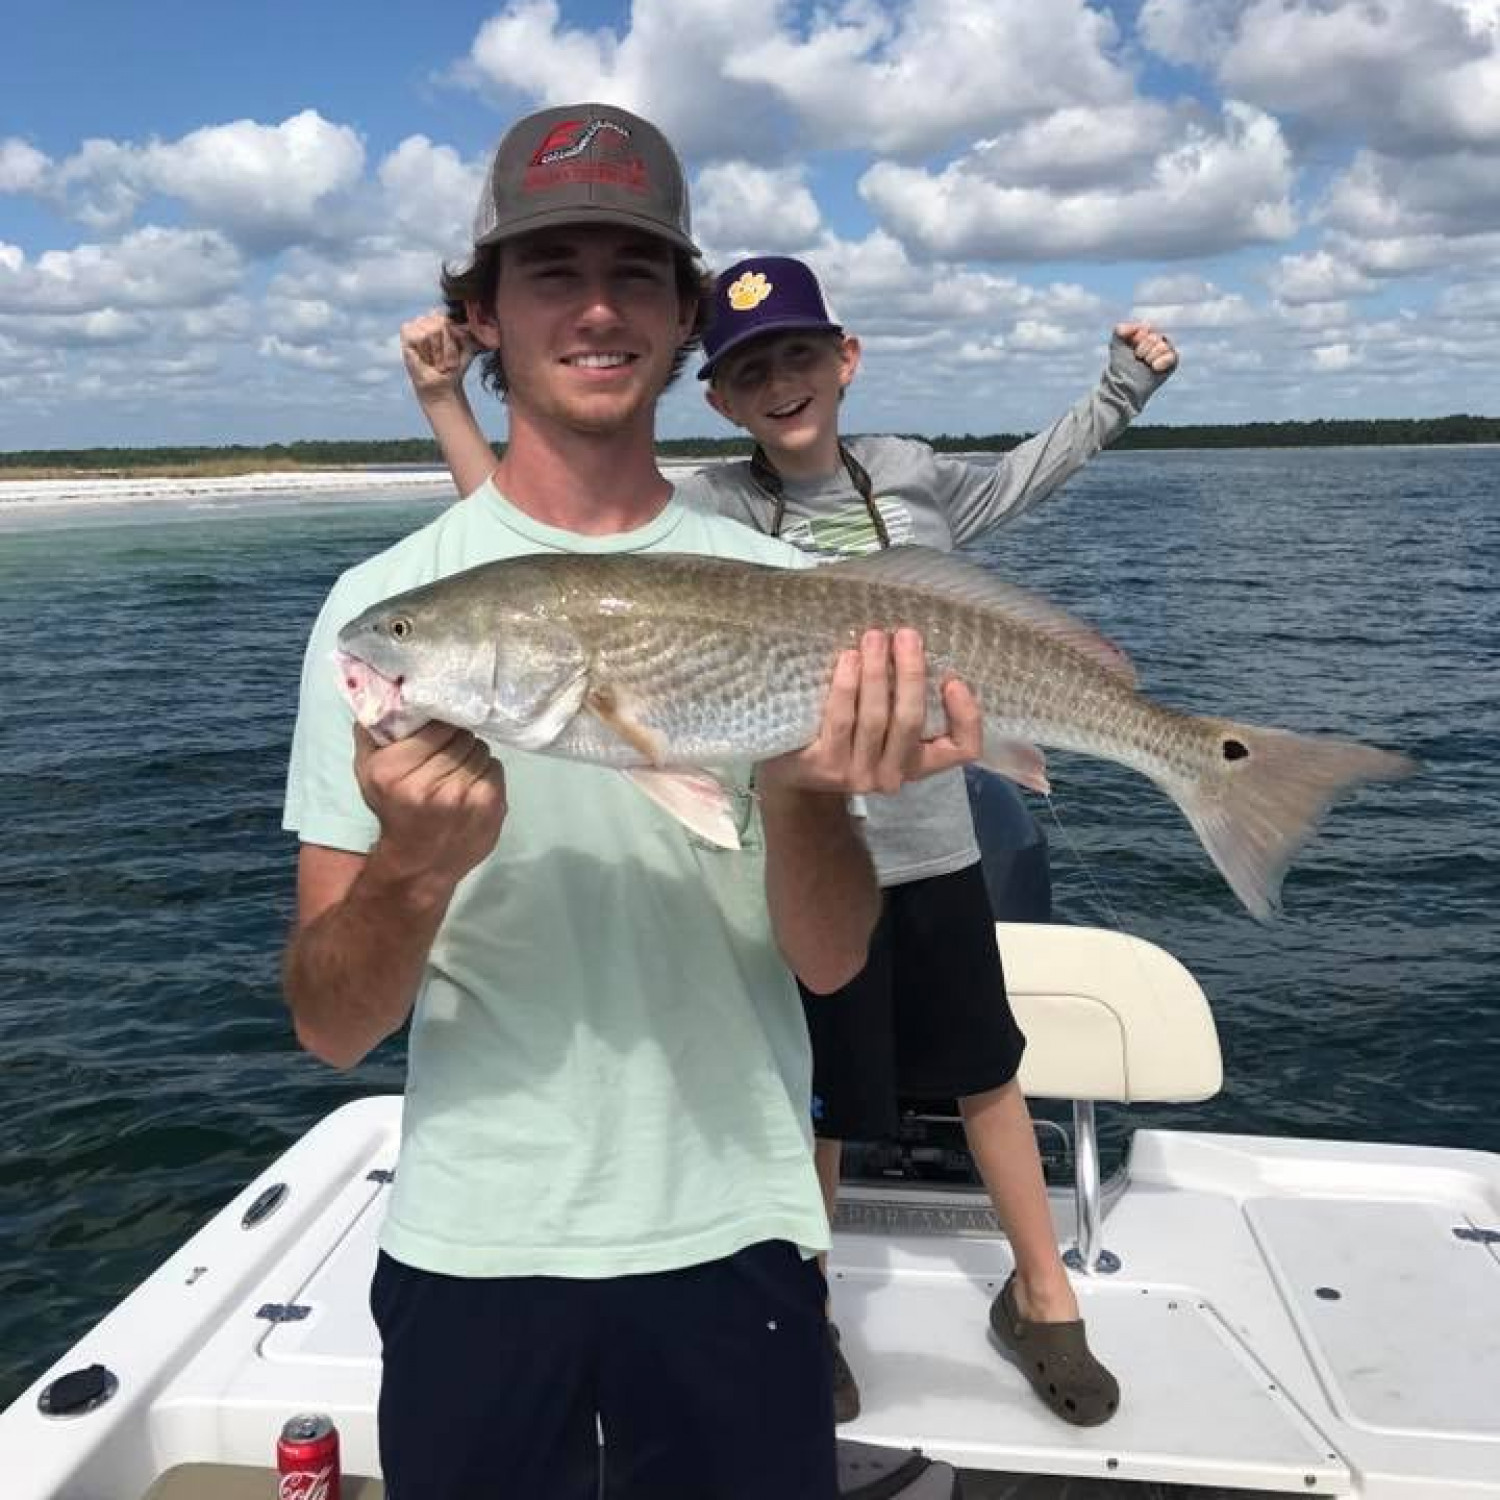 Title: Island Red - On board their Sportsman Island Bay 20 Bay Boat - Location: Panama City Florida. Participating in the Photo Contest #SportsmanNovember2017